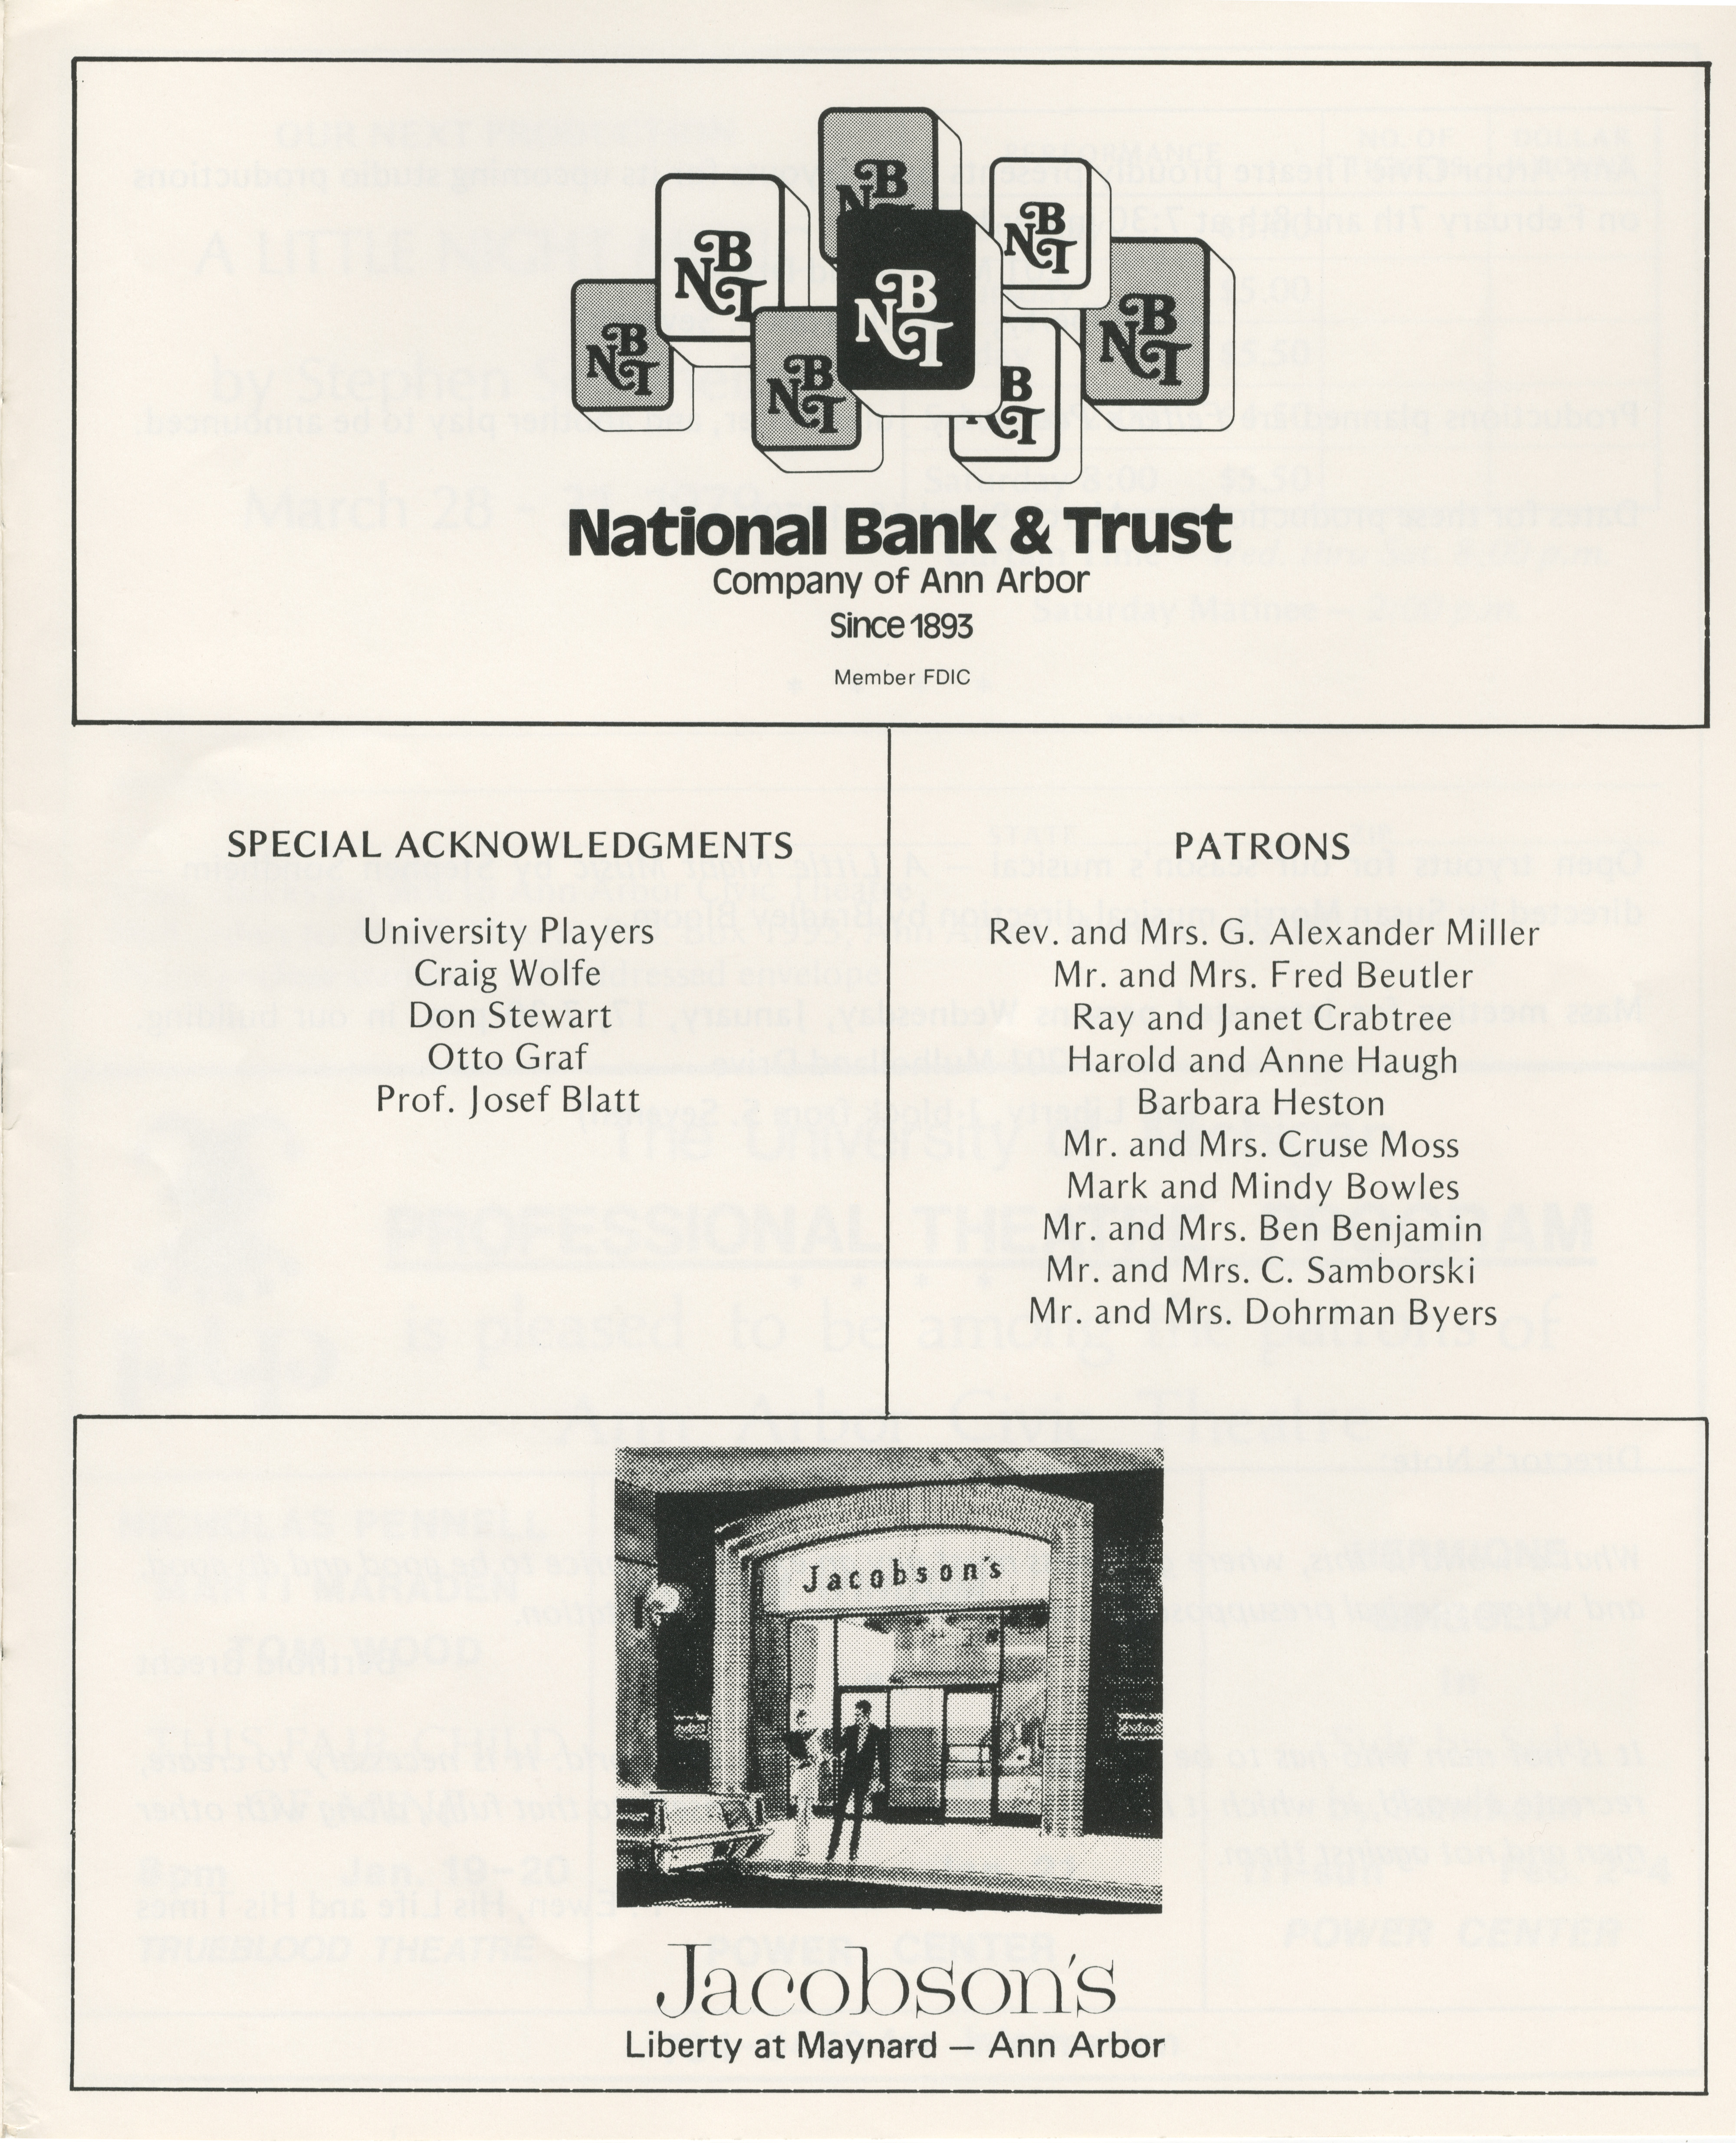 Ann Arbor Civic Theatre Program: The Good Person Of Szechwan, January 10, 1979 image